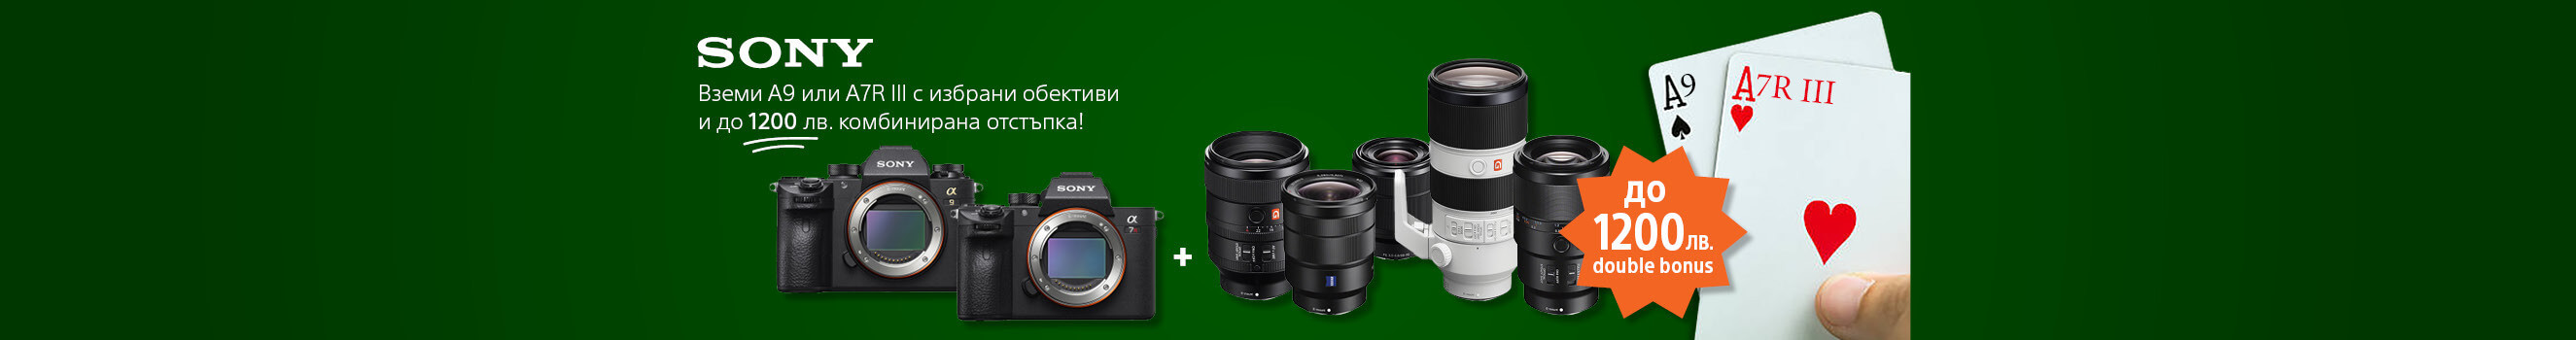 Sony A9 and A7R III cameras at an additional discount